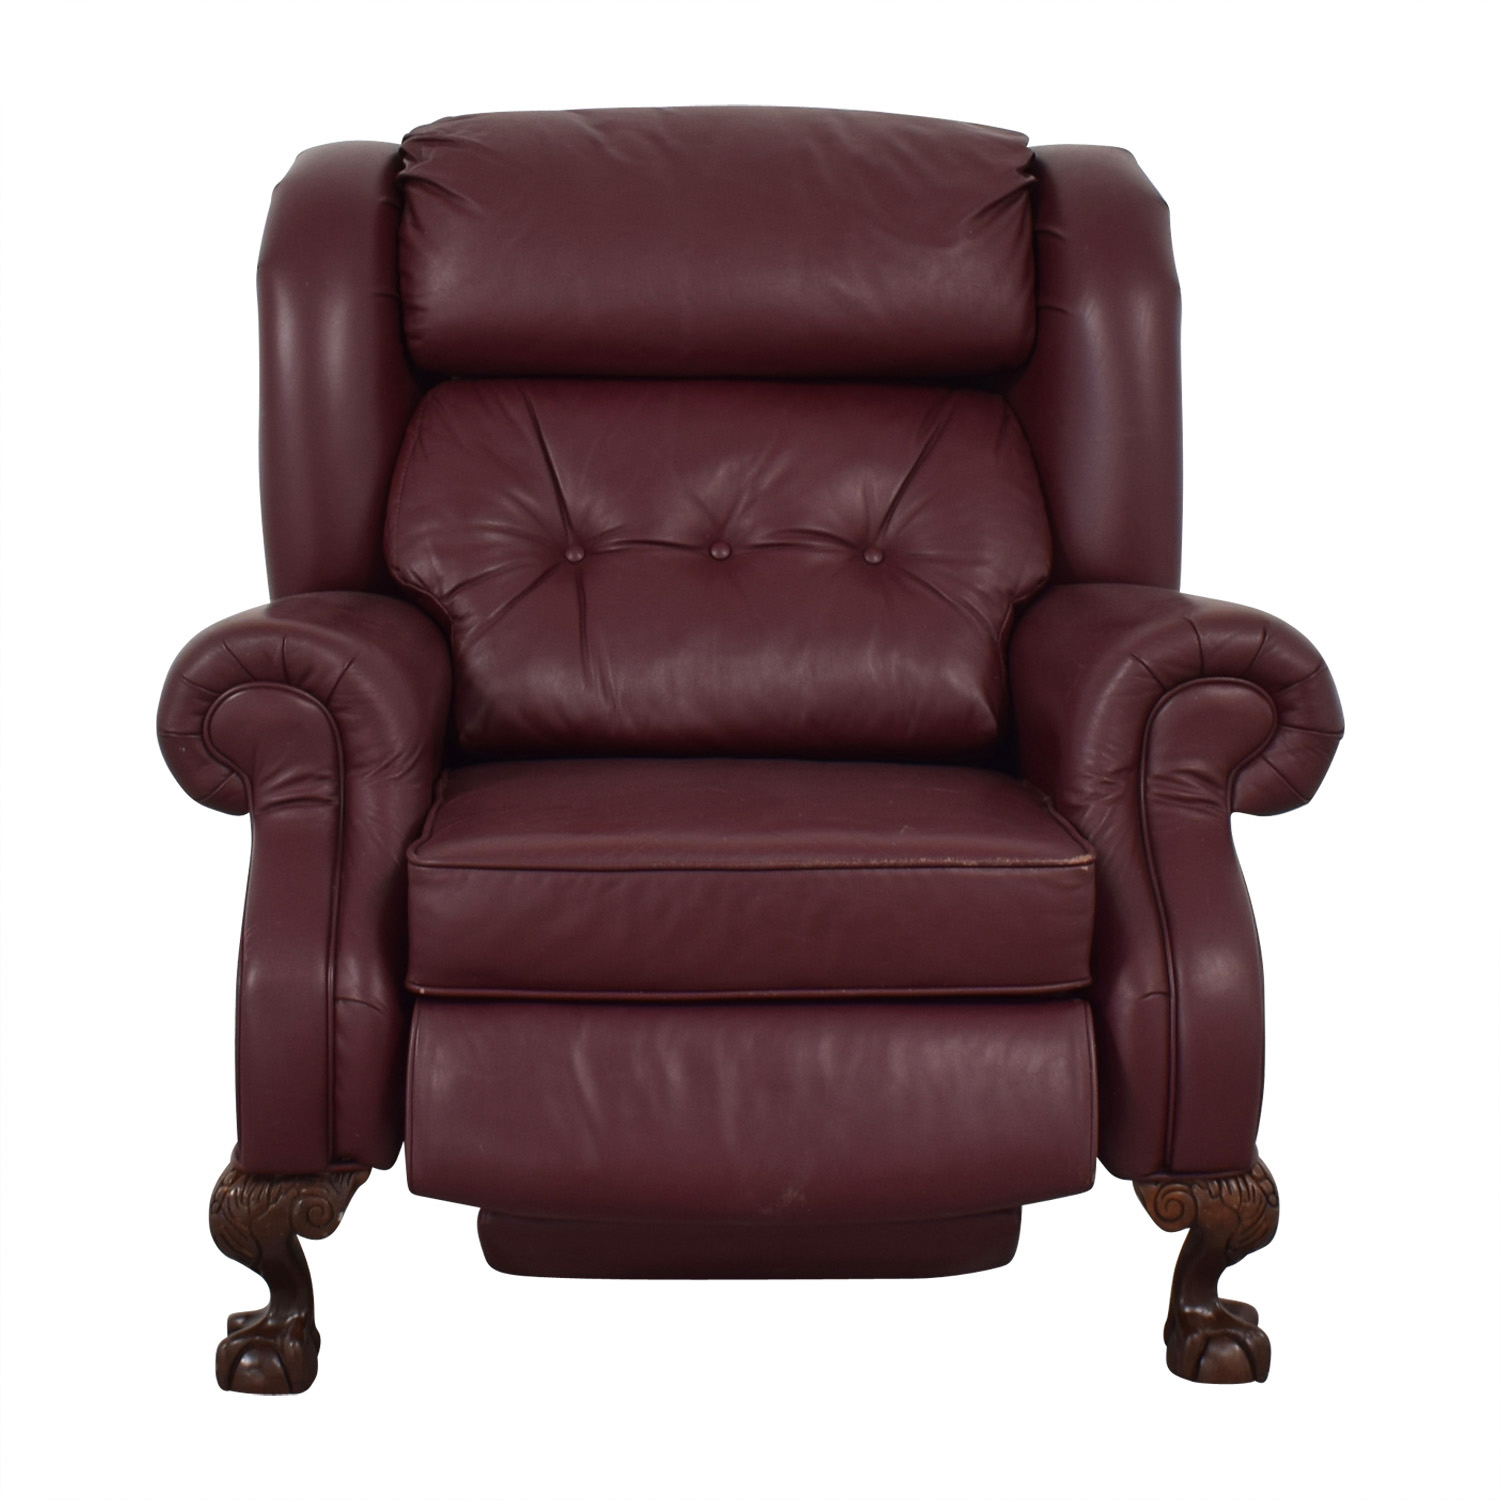 PeopLoungers PeopLoungers Burgundy Recliner nj